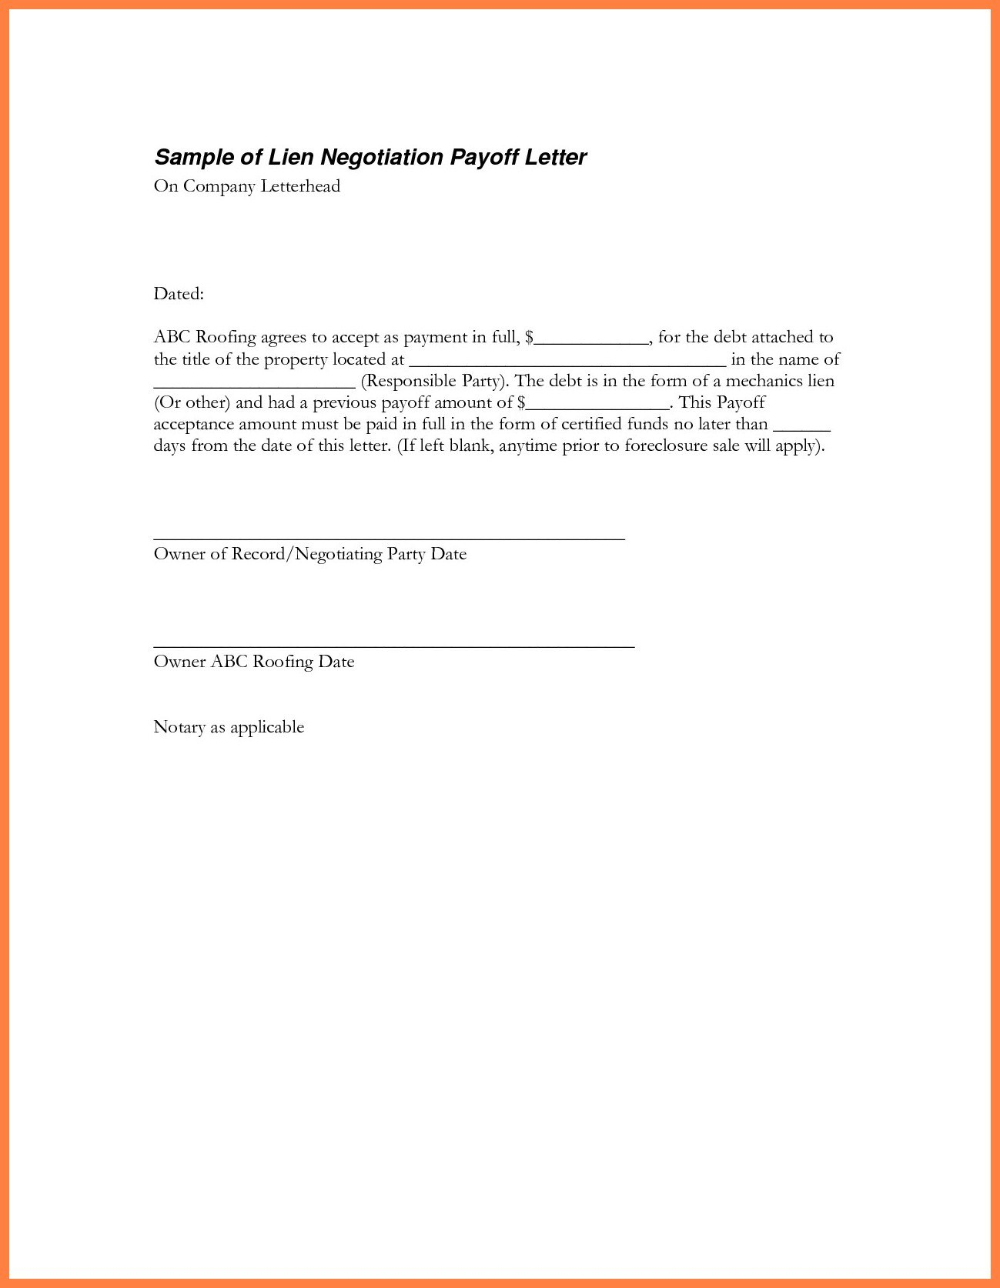 Loan Payoff Letter Heleenvandenhombergh With Regard To Payoff Letter Template 10 Professional Templates Ideas 10 Prof Payoff Letter Loan Payoff Lettering